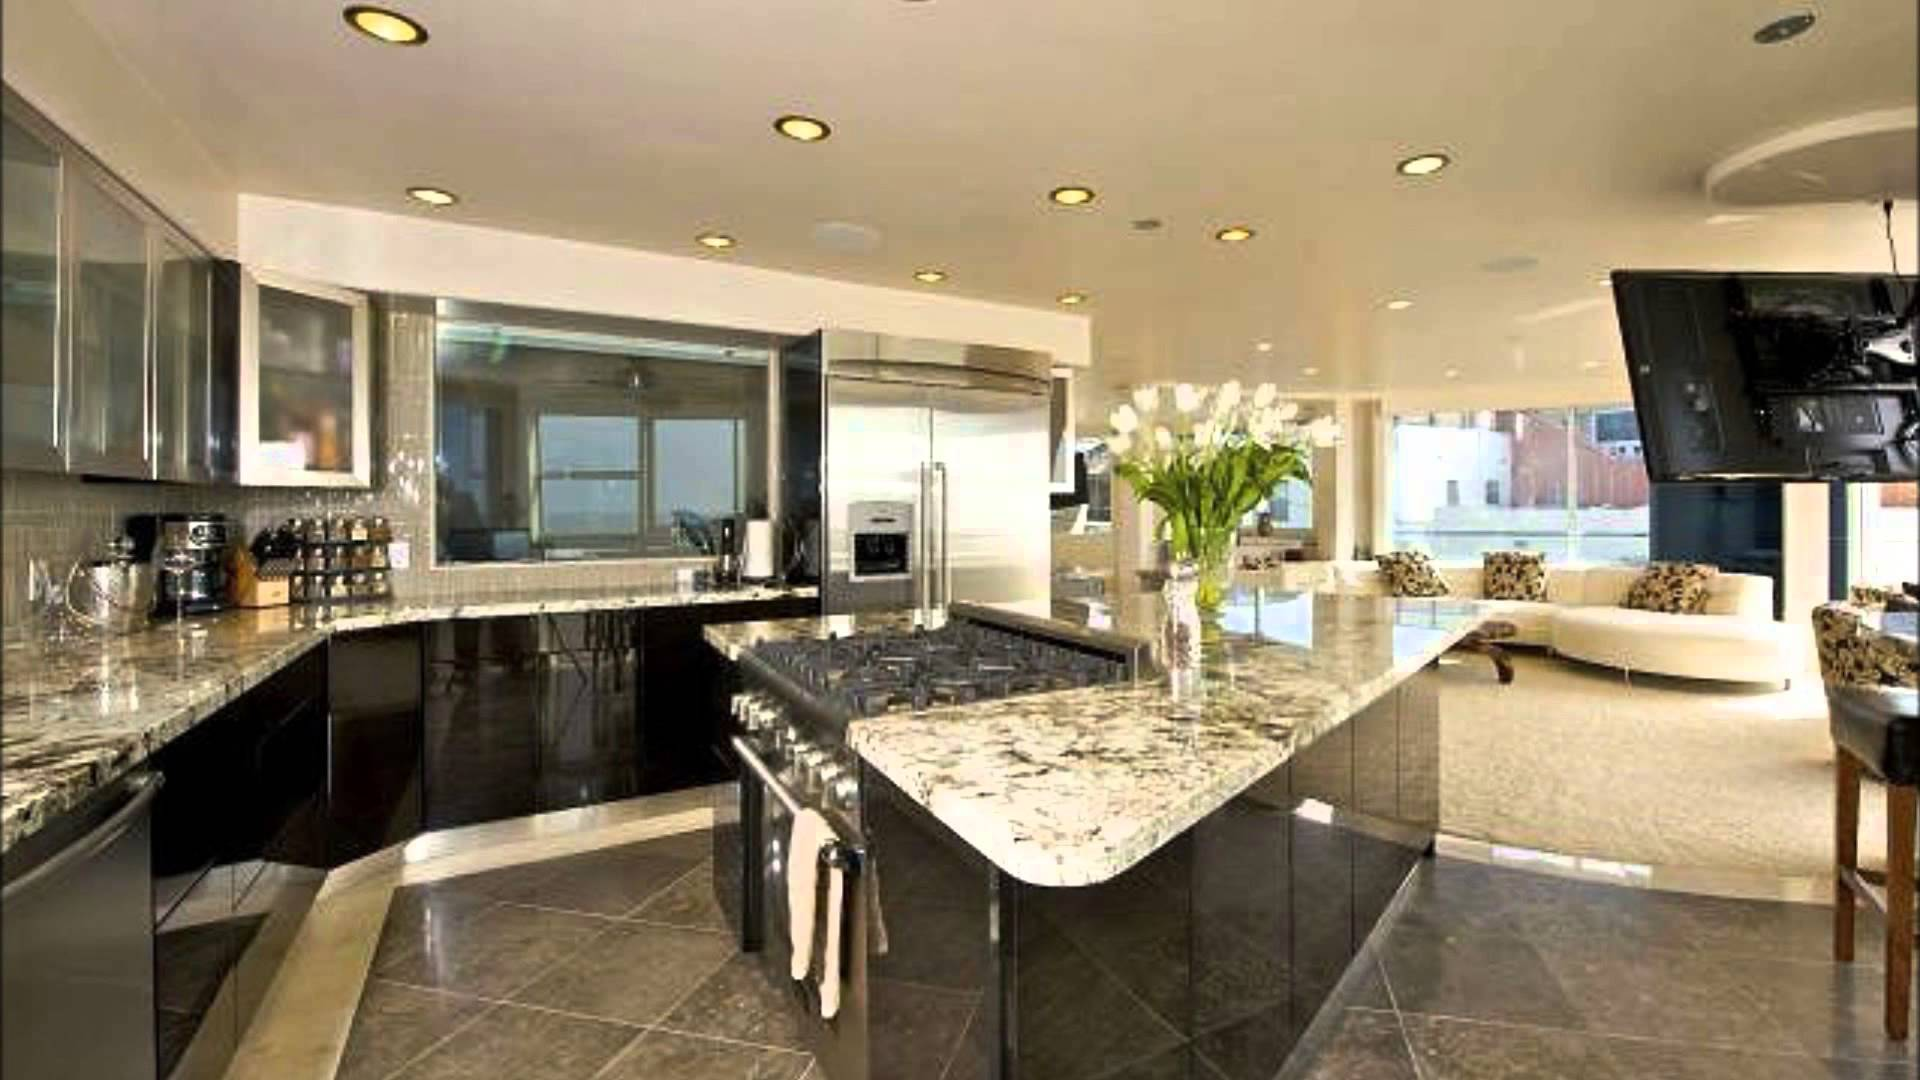 Design your own kitchen ideas with images - Kitchen designs images ...